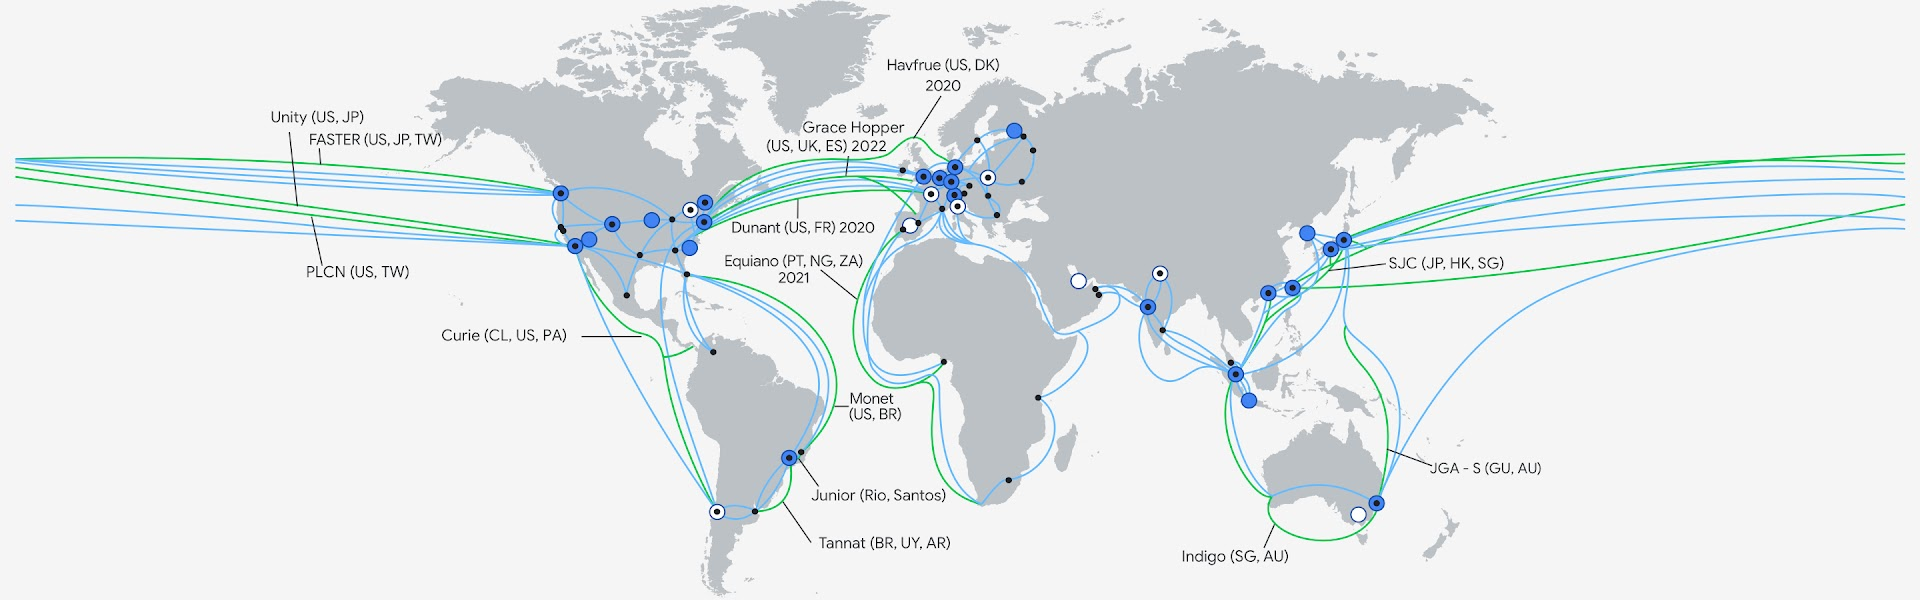 Mapa da infraestrutura do Google Cloud